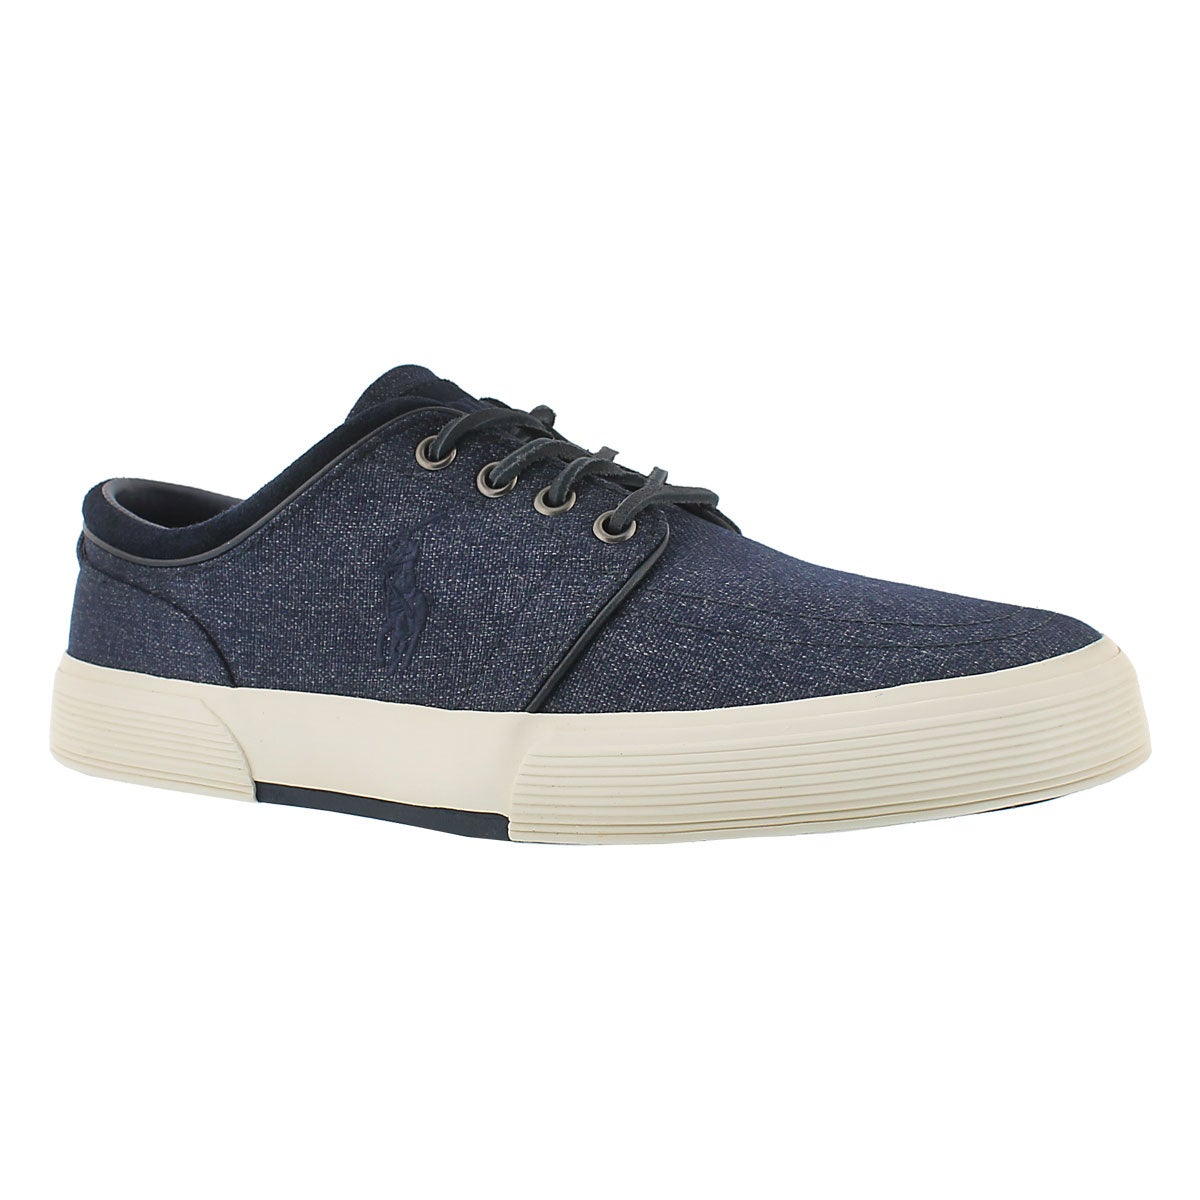 Men's FAXON LOW navy nylon sneakers